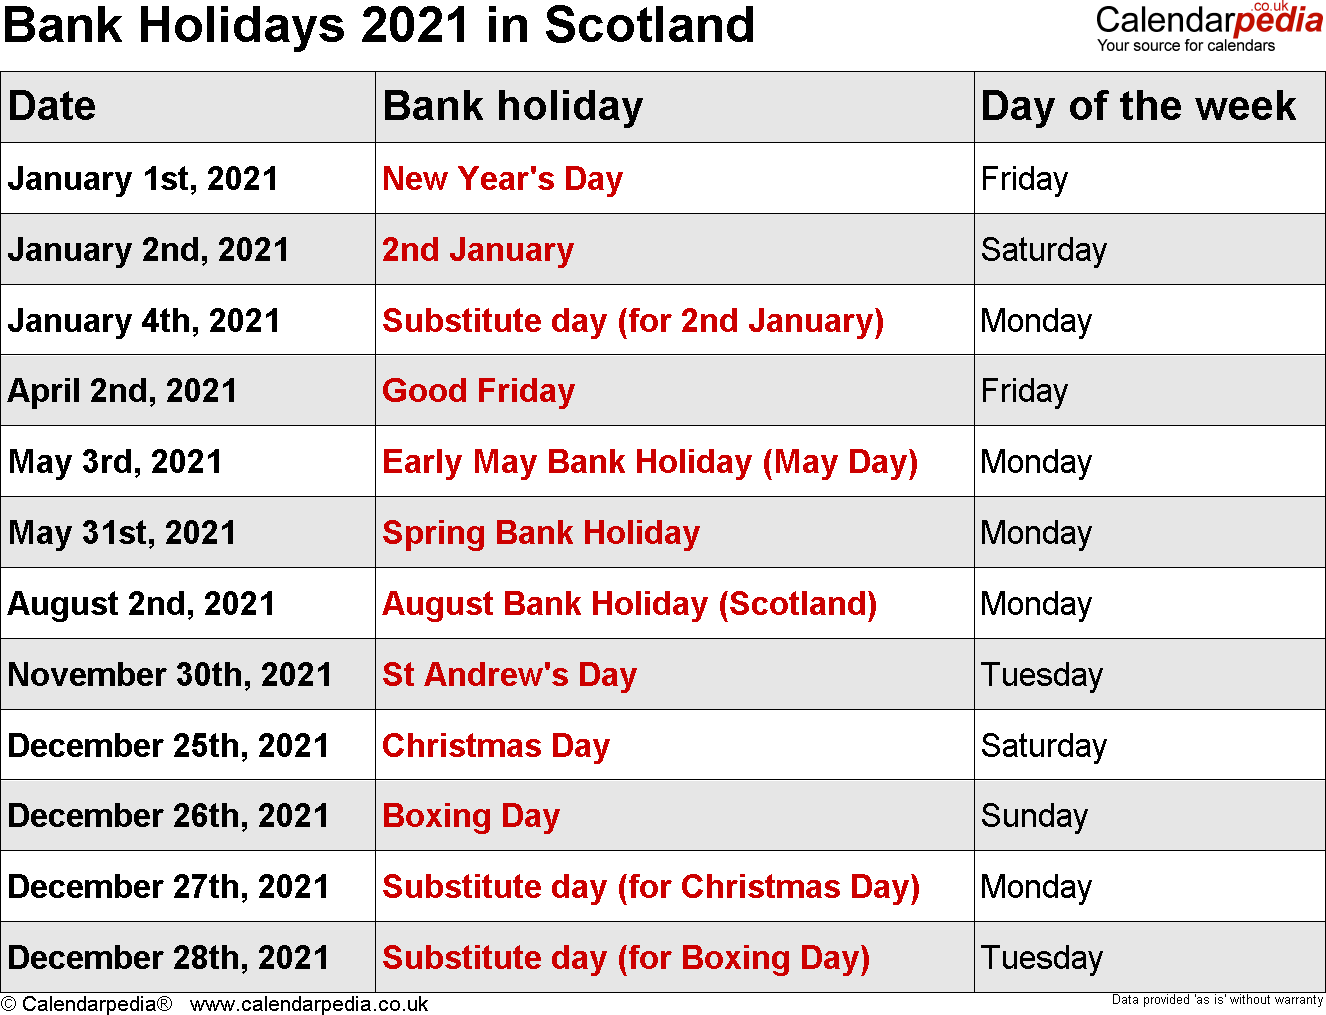 Easter 2021 Bank Holidays